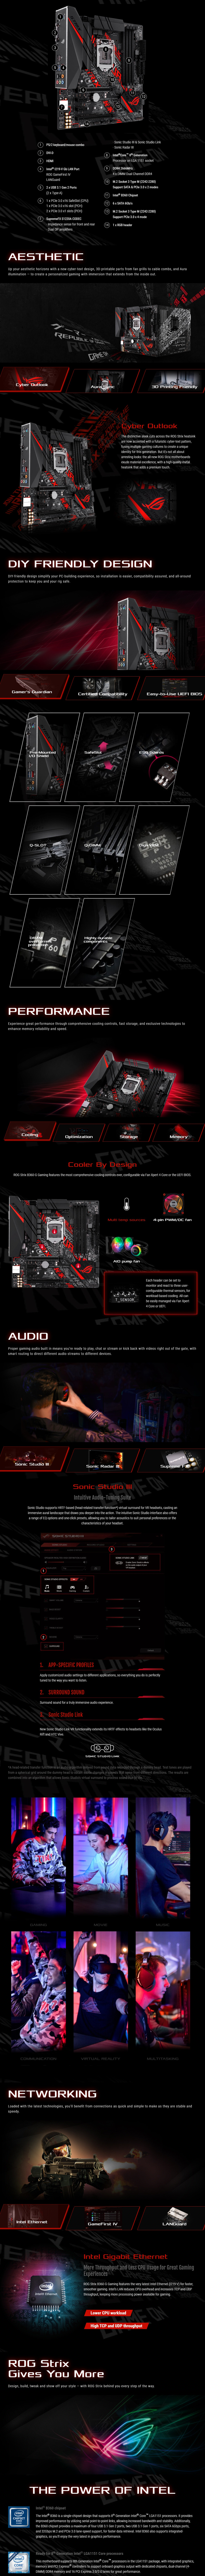 Asus ROG Strix B360-G Gaming Intel LGA 1151 CL mATX Motherboard